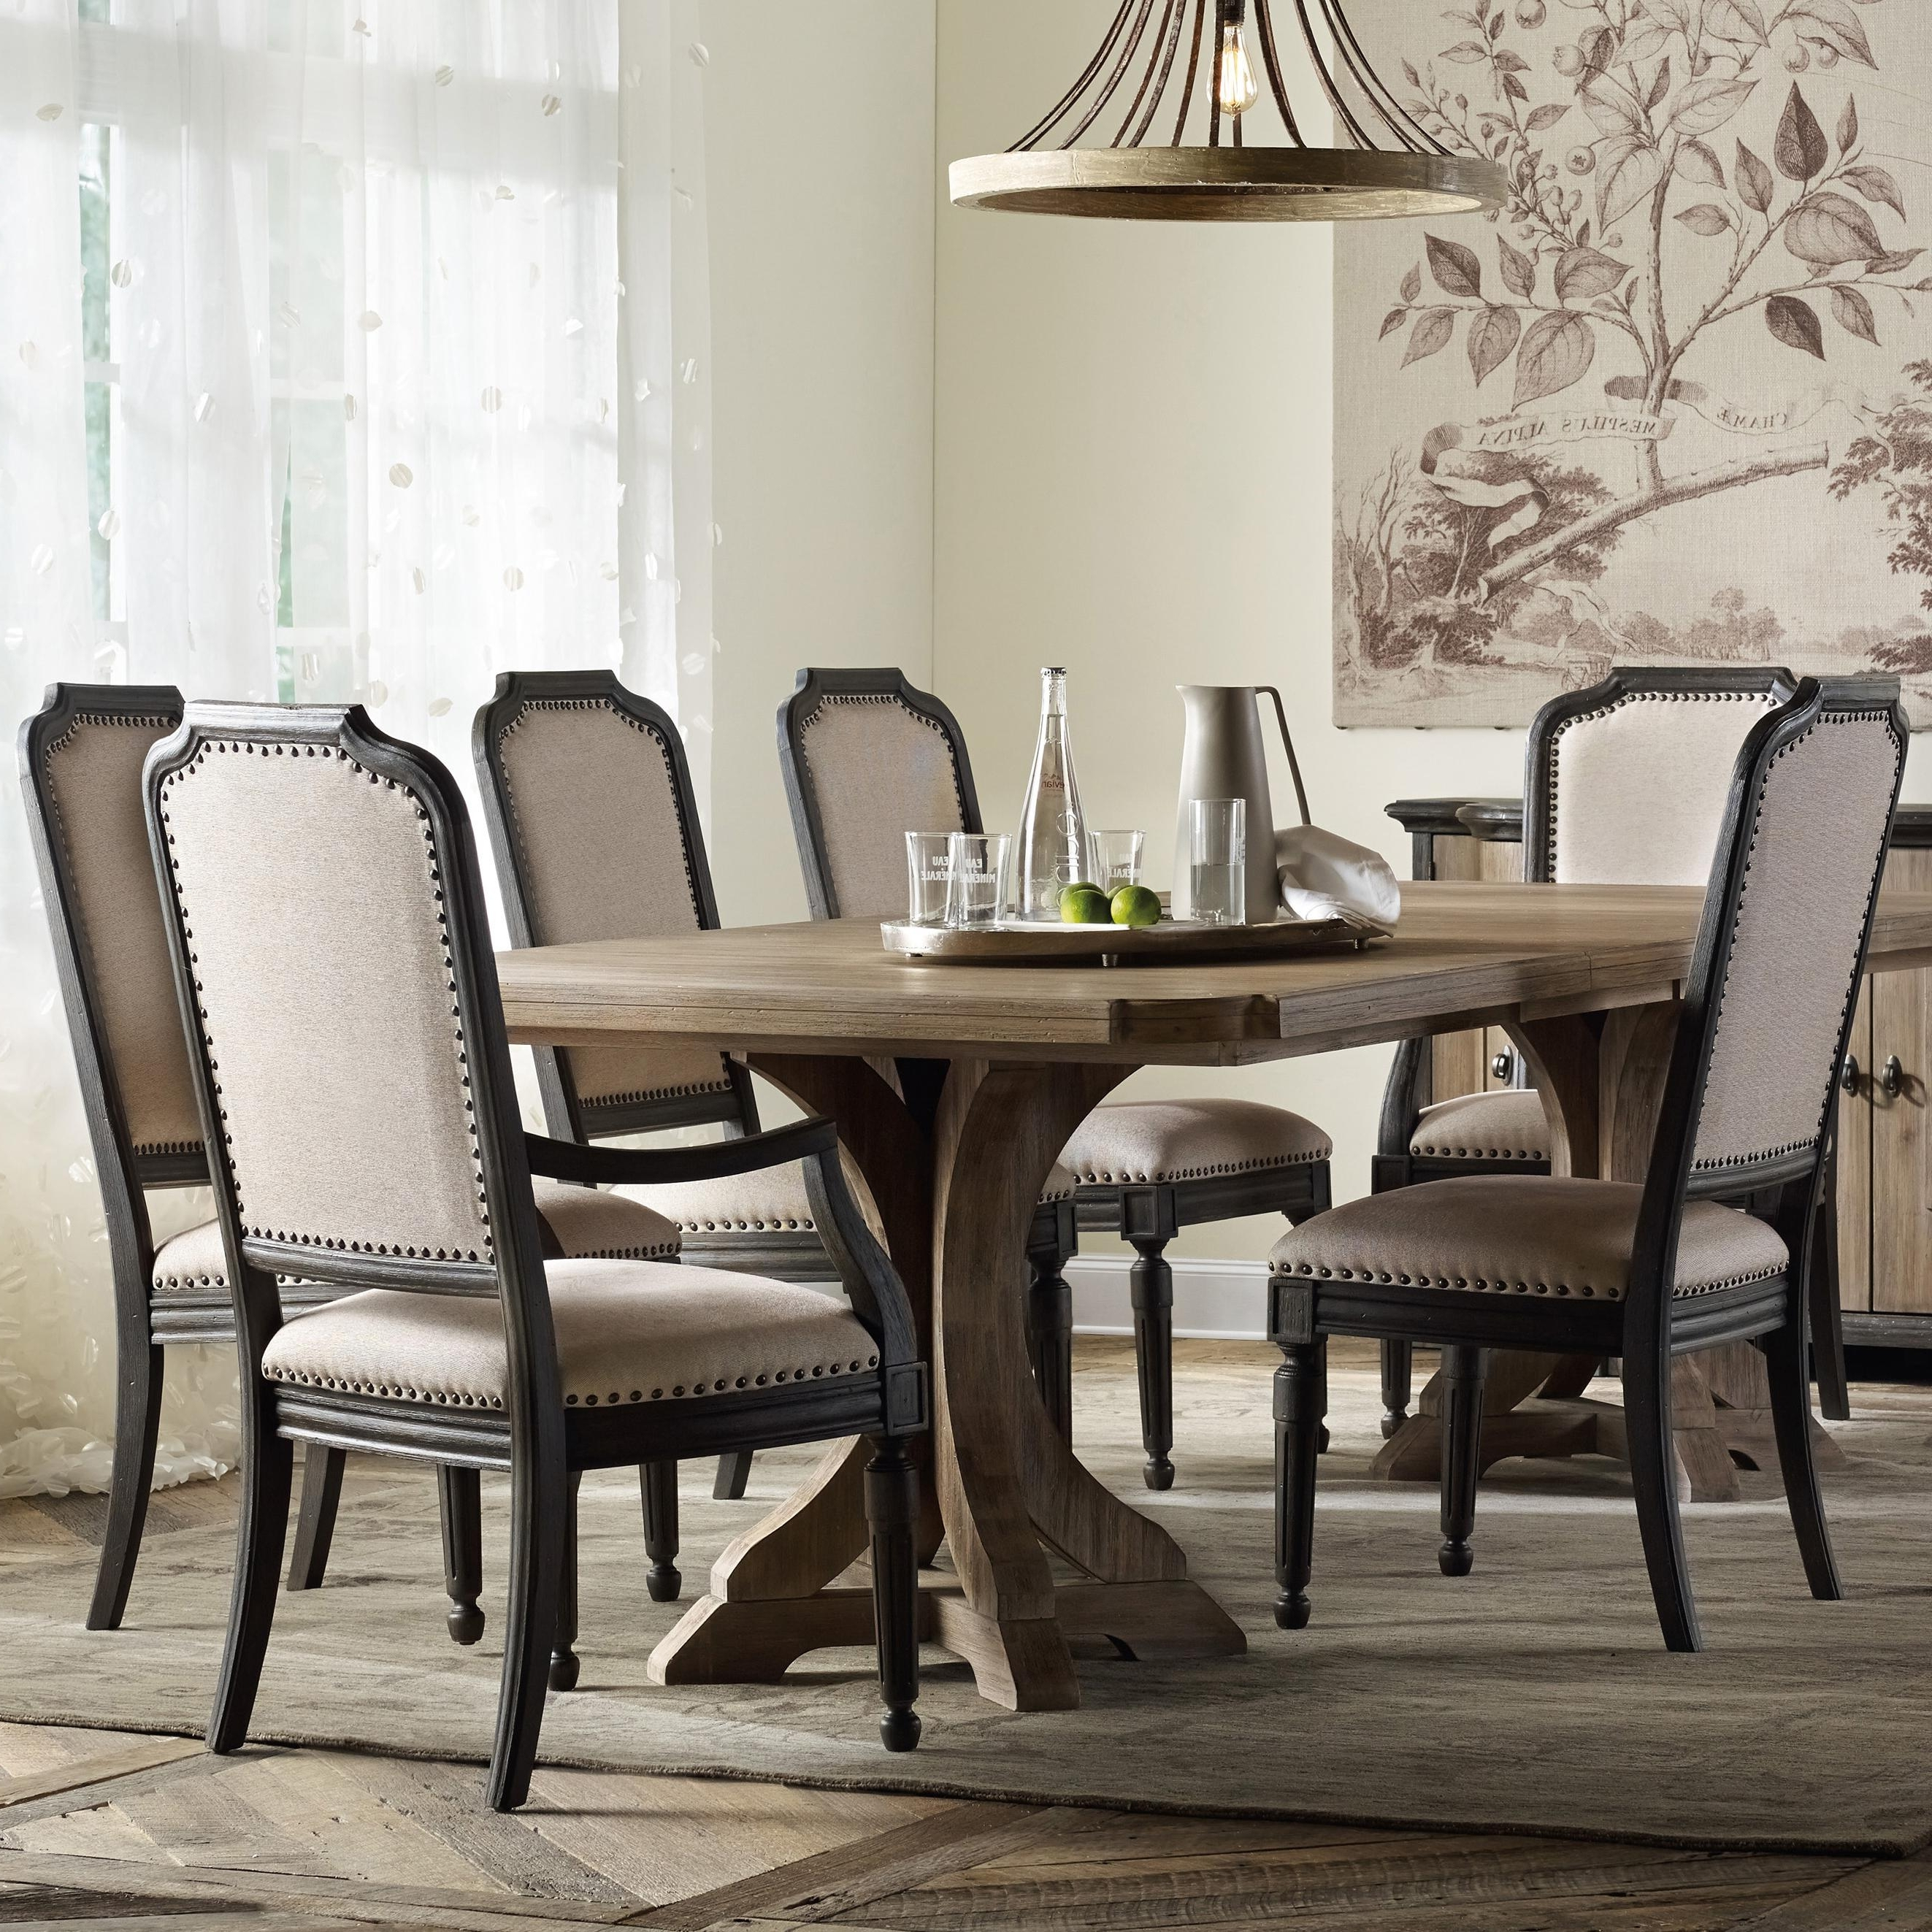 Hooker Furniture Corsica Rectangle Pedestal Dining Table Set With For 2018 Pedestal Dining Tables And Chairs (View 8 of 25)